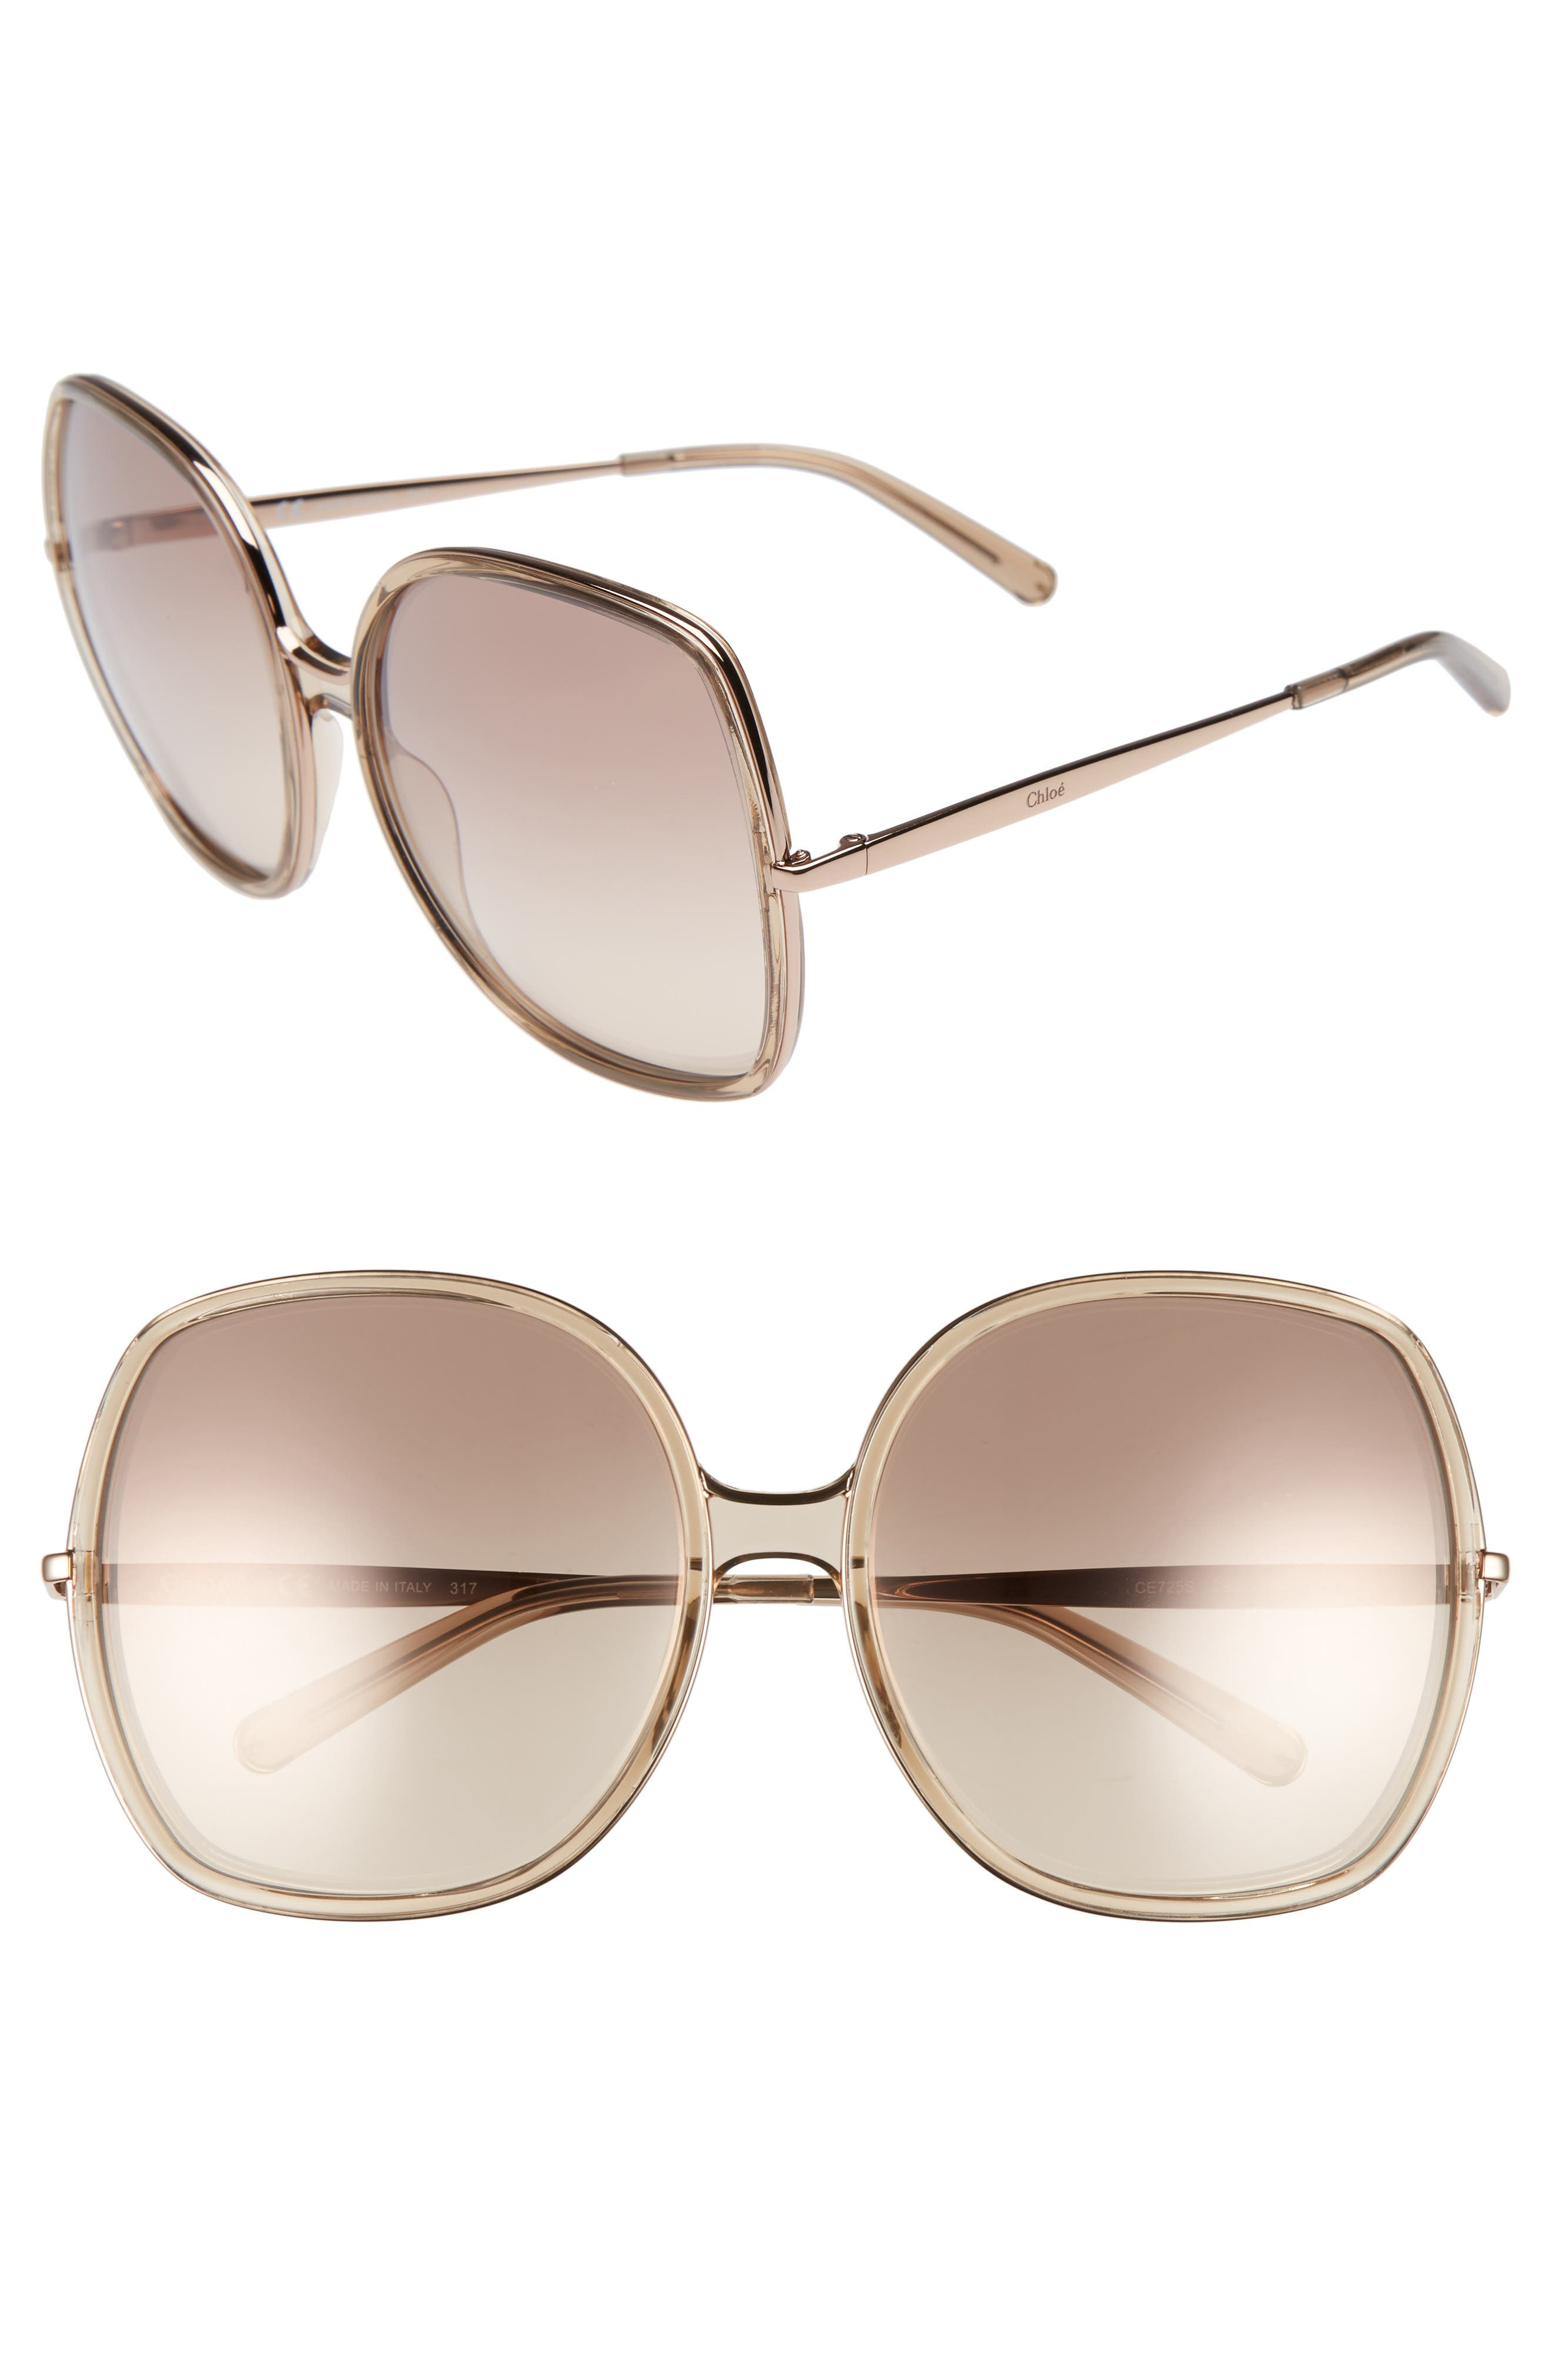 Alternate Image 1 Selected - Chloé 62mm Oversized Gradient Lens Square Sunglasses